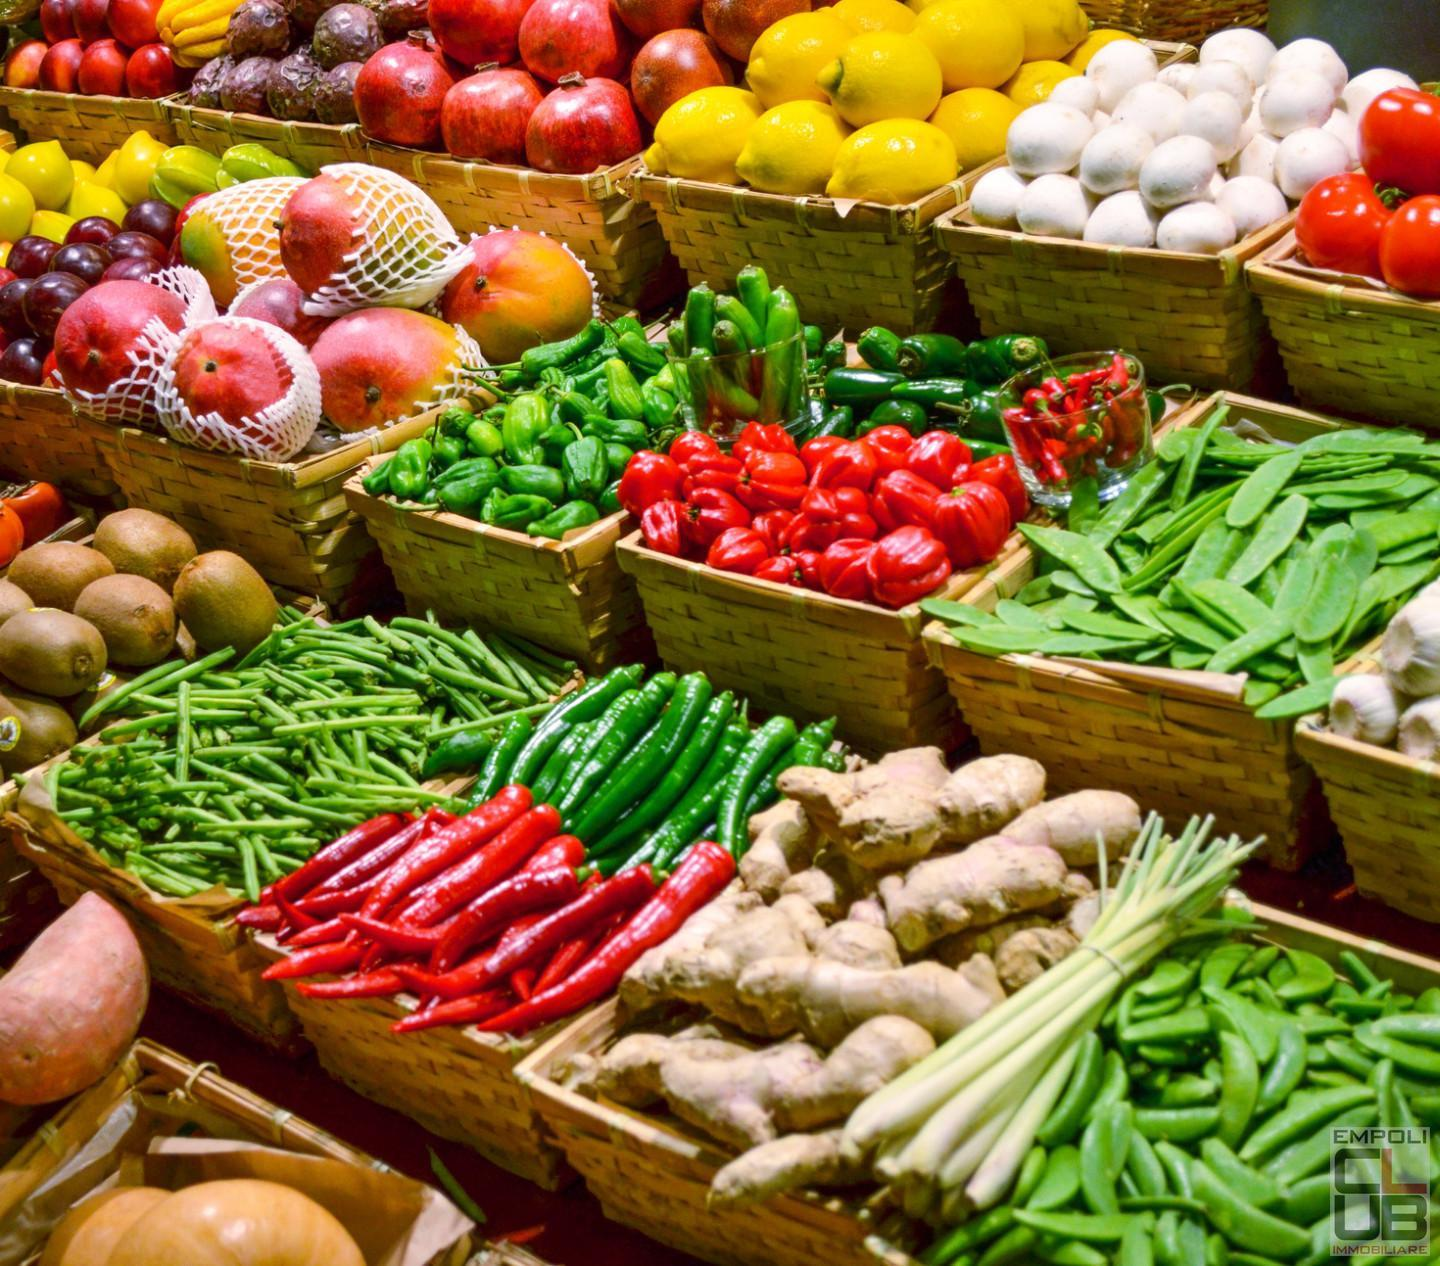 Groceries for sale in Empoli (FI)